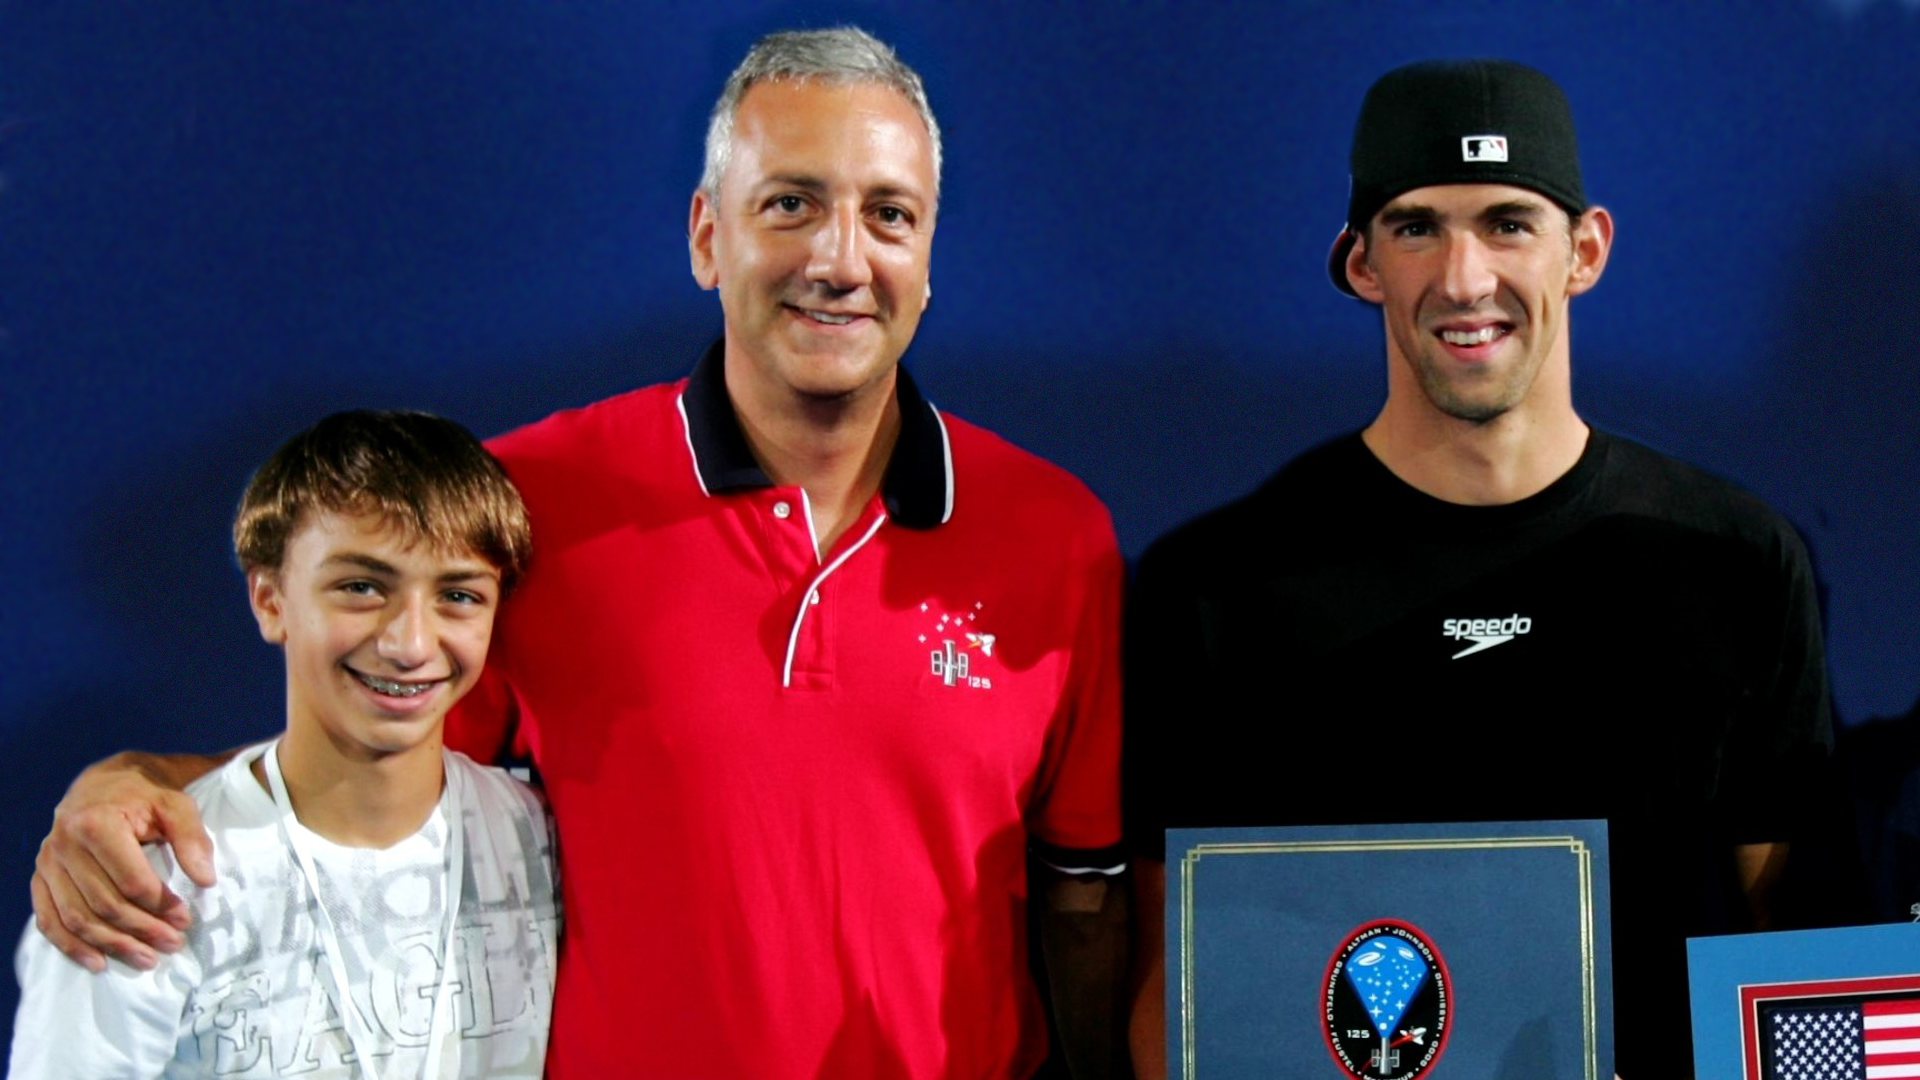 Mike Massimino and Michael Phelps